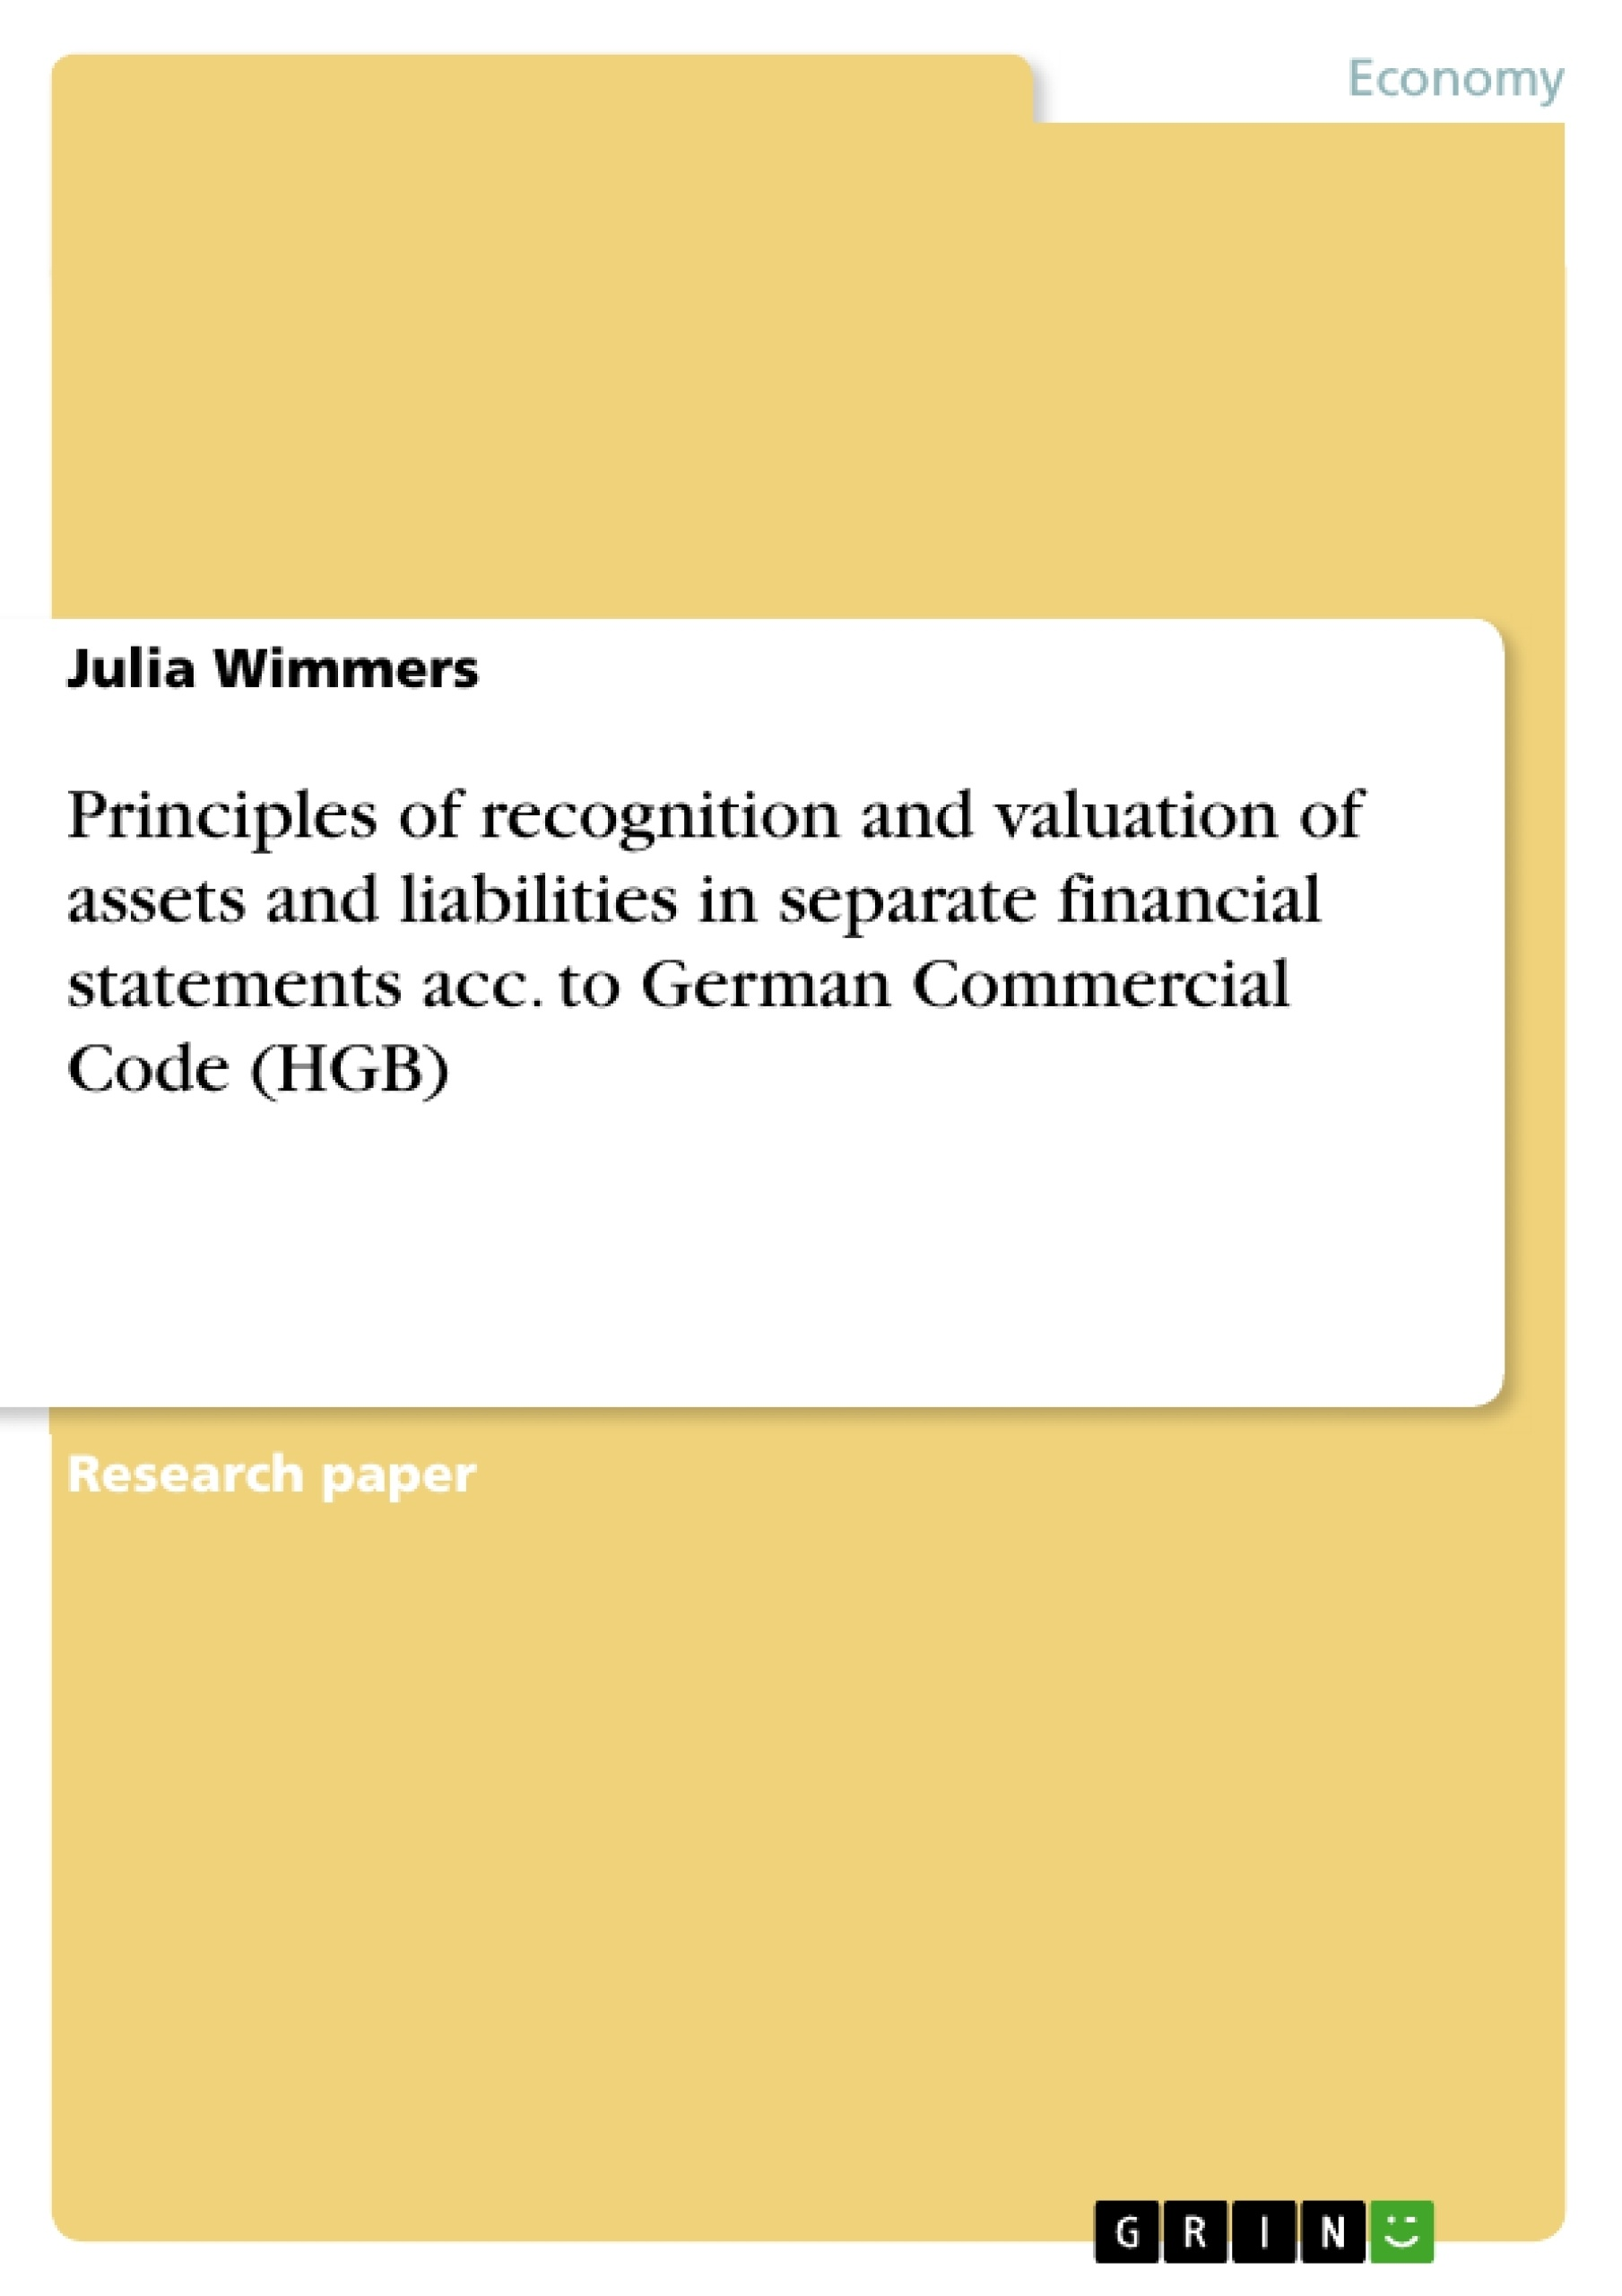 Title: Principles of recognition and valuation of assets and liabilities in separate financial statements acc. to German Commercial Code (HGB)